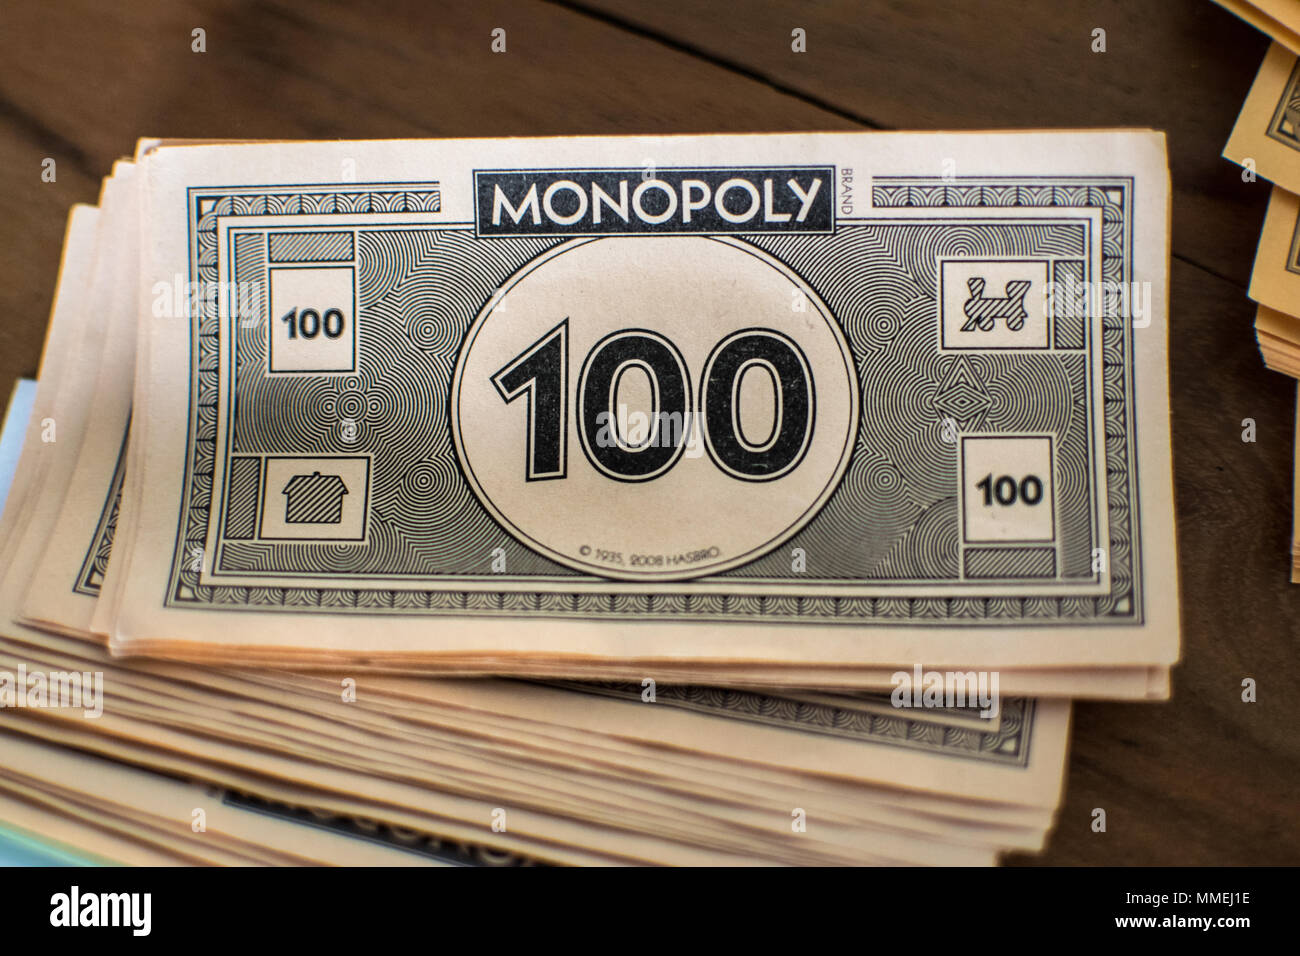 Close up of Monopoly money - Stock Image